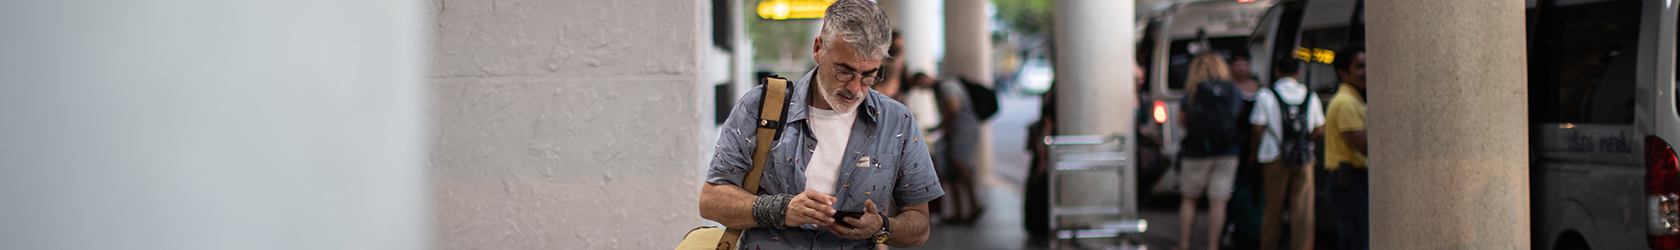 Man is on his mobile phone in an airport, wearing short-sleeved shirt and shorts.